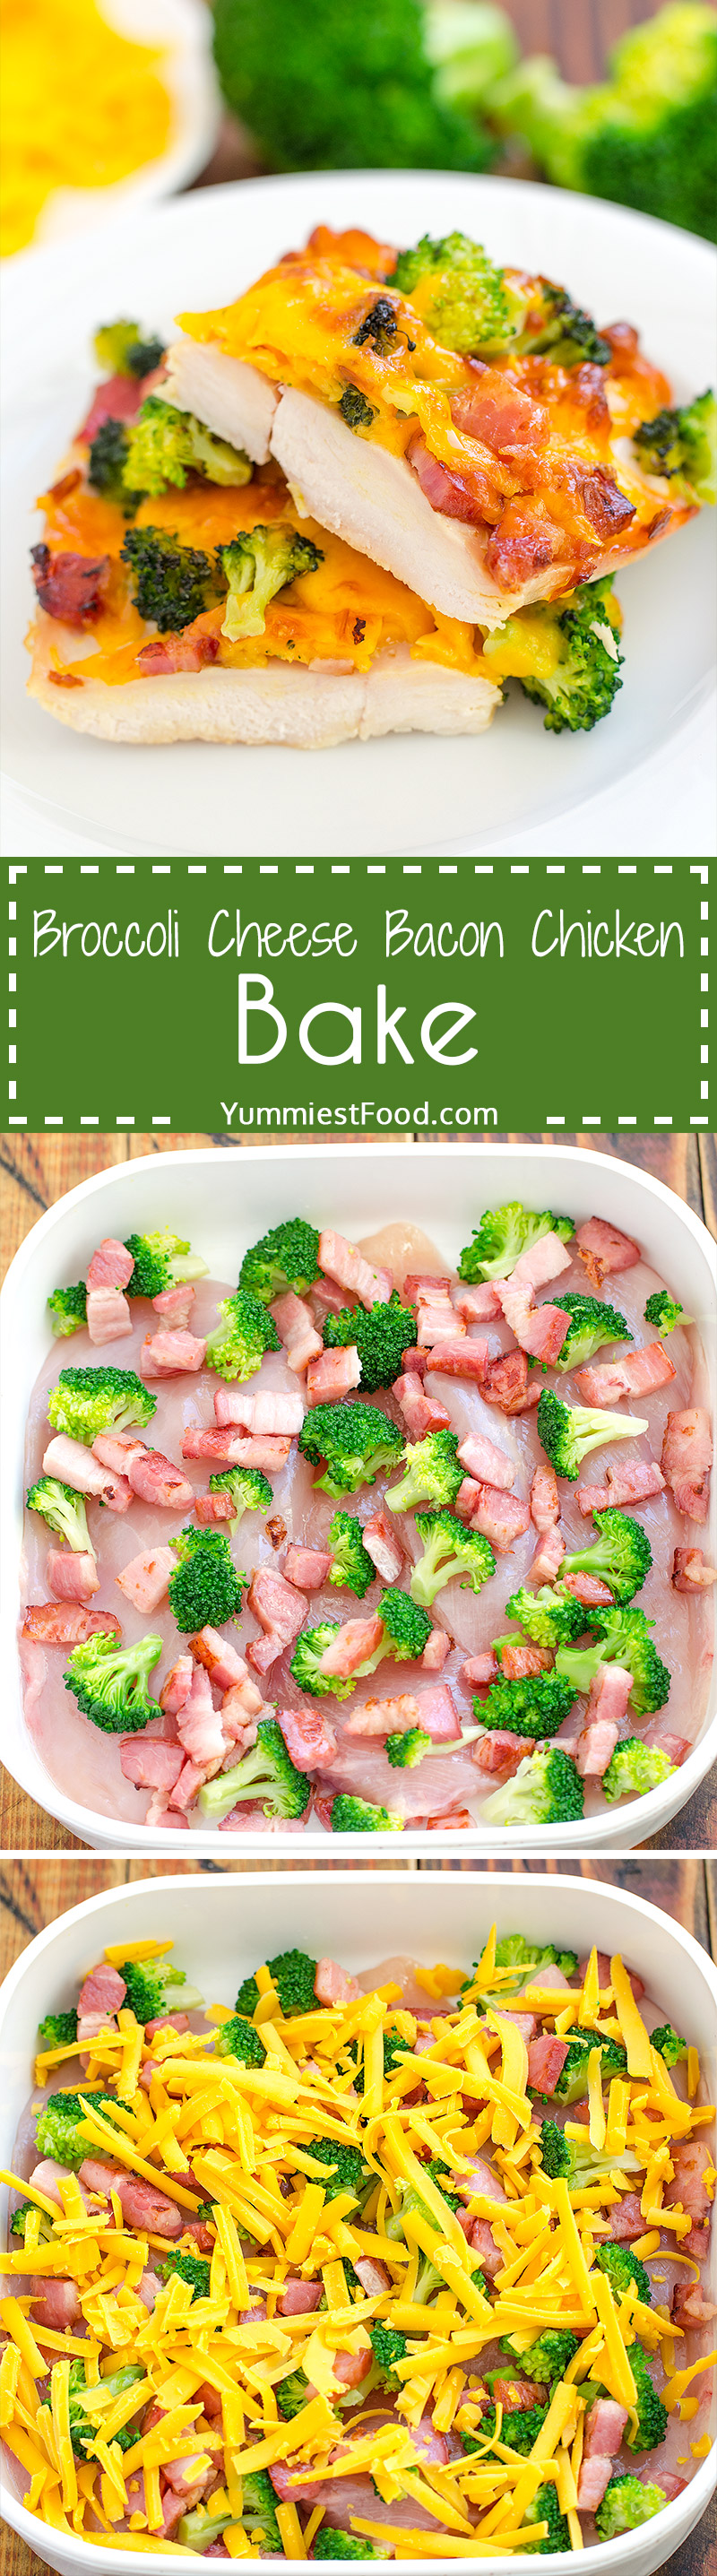 BROCCOLI CHESSE BACON CHICKEN - simple and easy meal for whole family